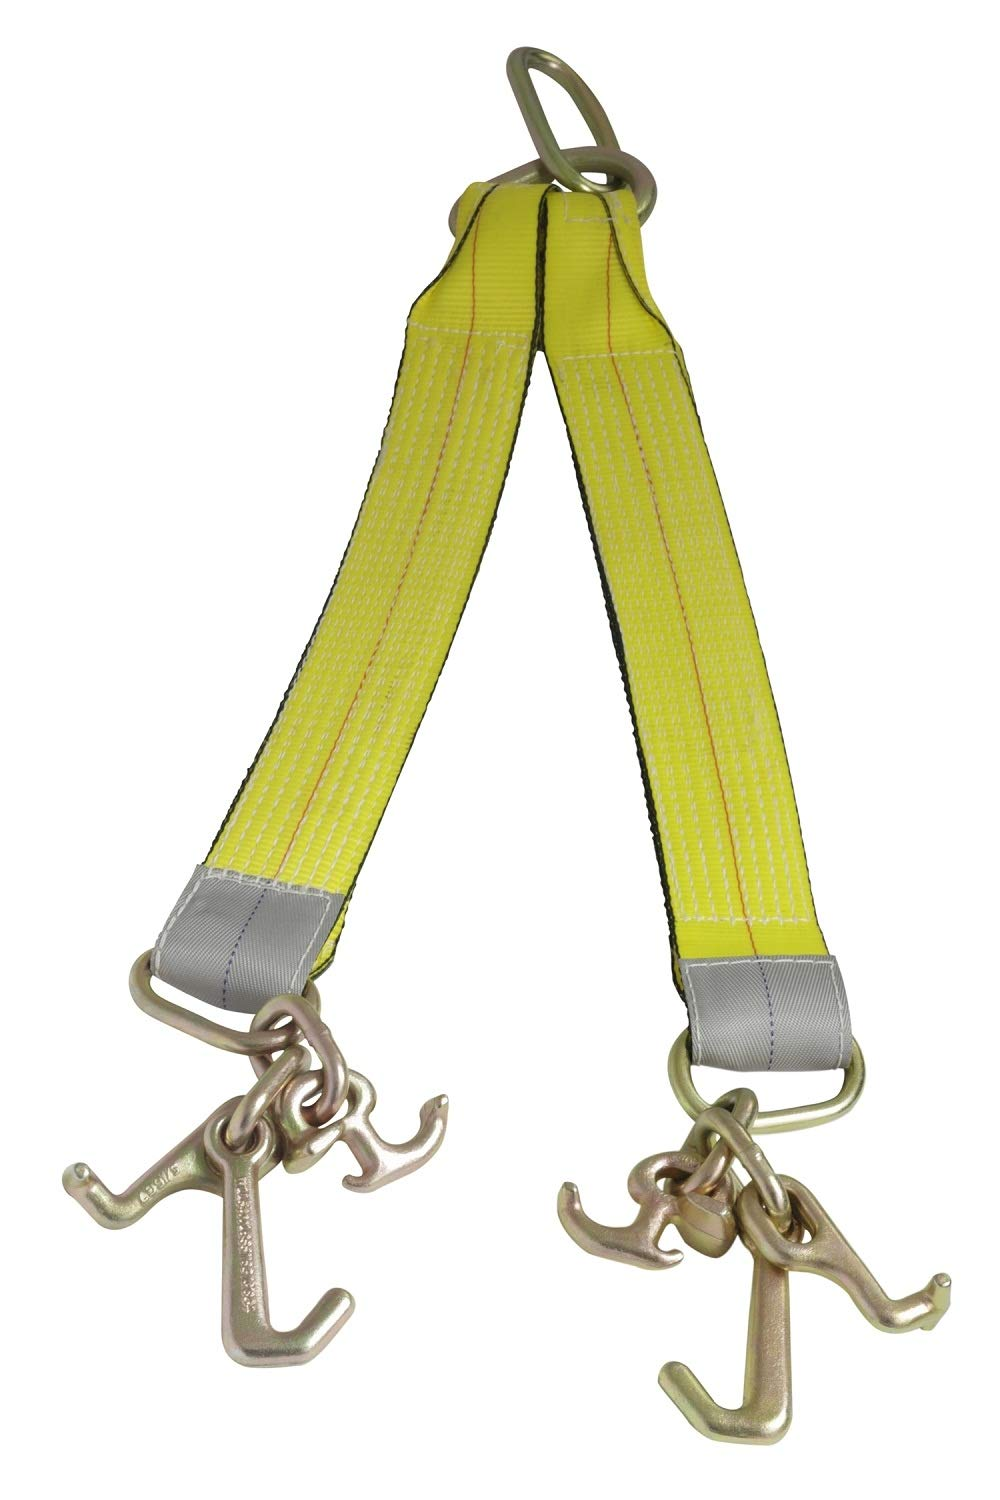 Mytee Products Tow Straps V Bridle 3'' x 24'' w/RTJ Cluster Hooks 5400WLL